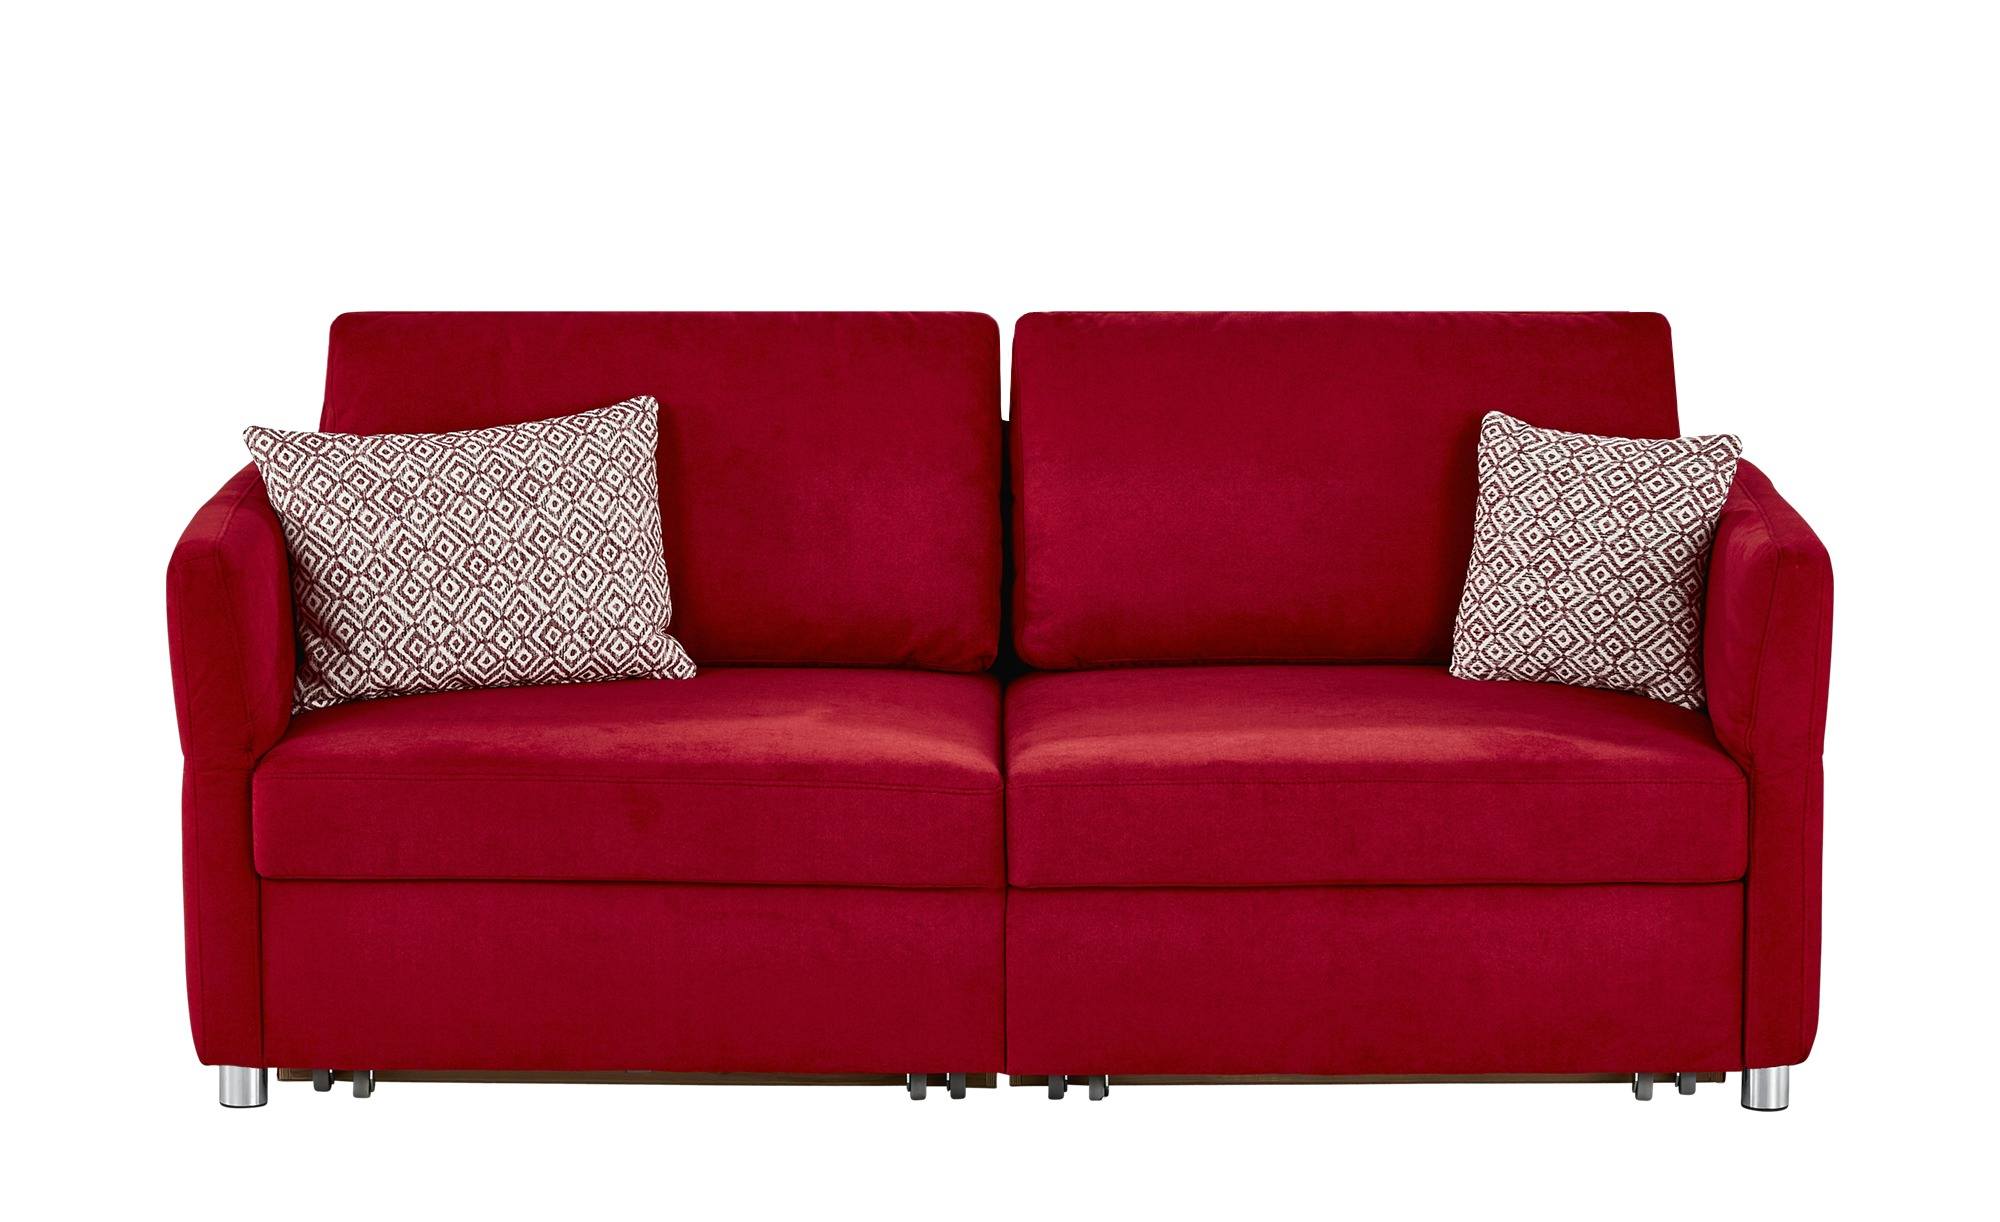 schlafsofa michaela breite 236 cm h he 90 cm rot online kaufen bei woonio. Black Bedroom Furniture Sets. Home Design Ideas